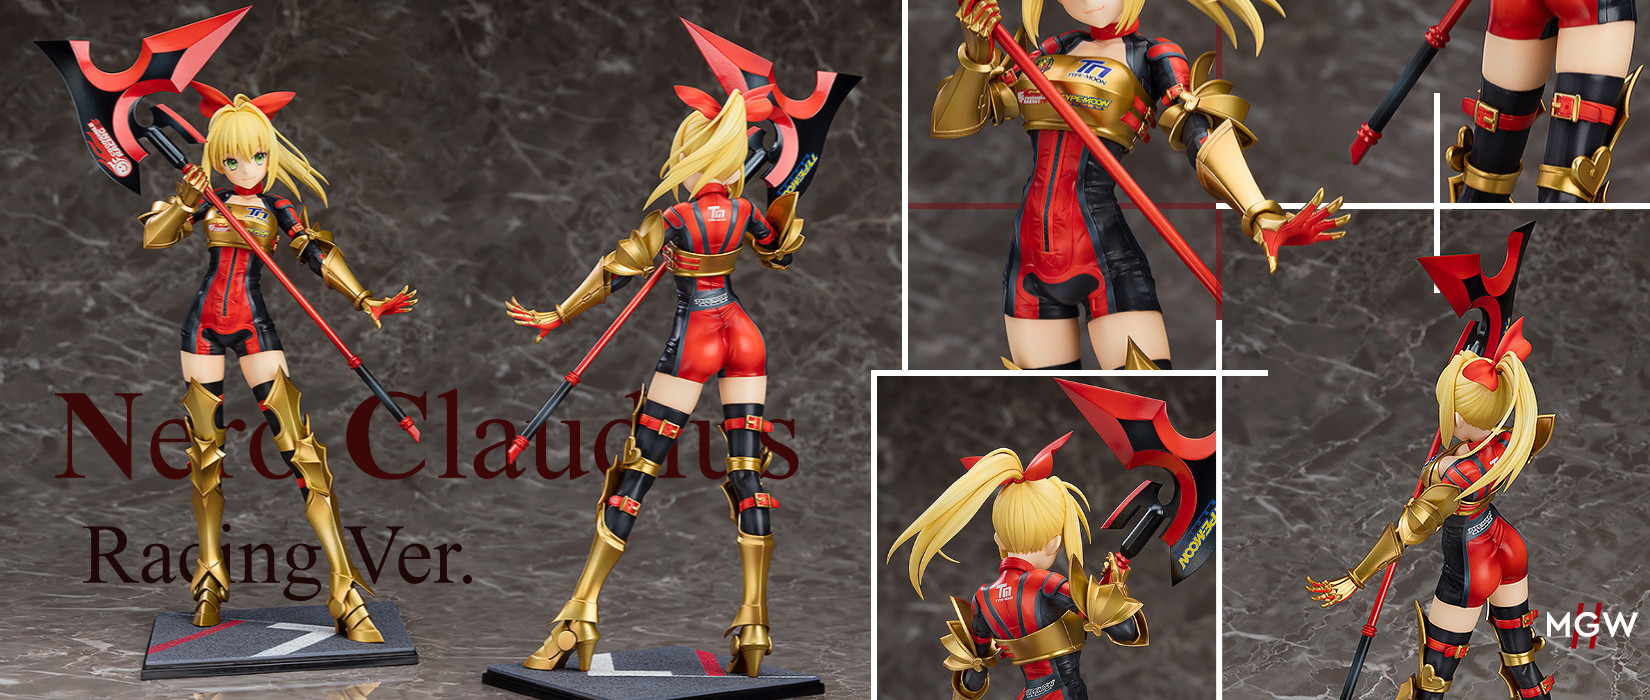 Nero Claudius Racing Ver. by GOODSMILE RACING TYPE MOON RACING